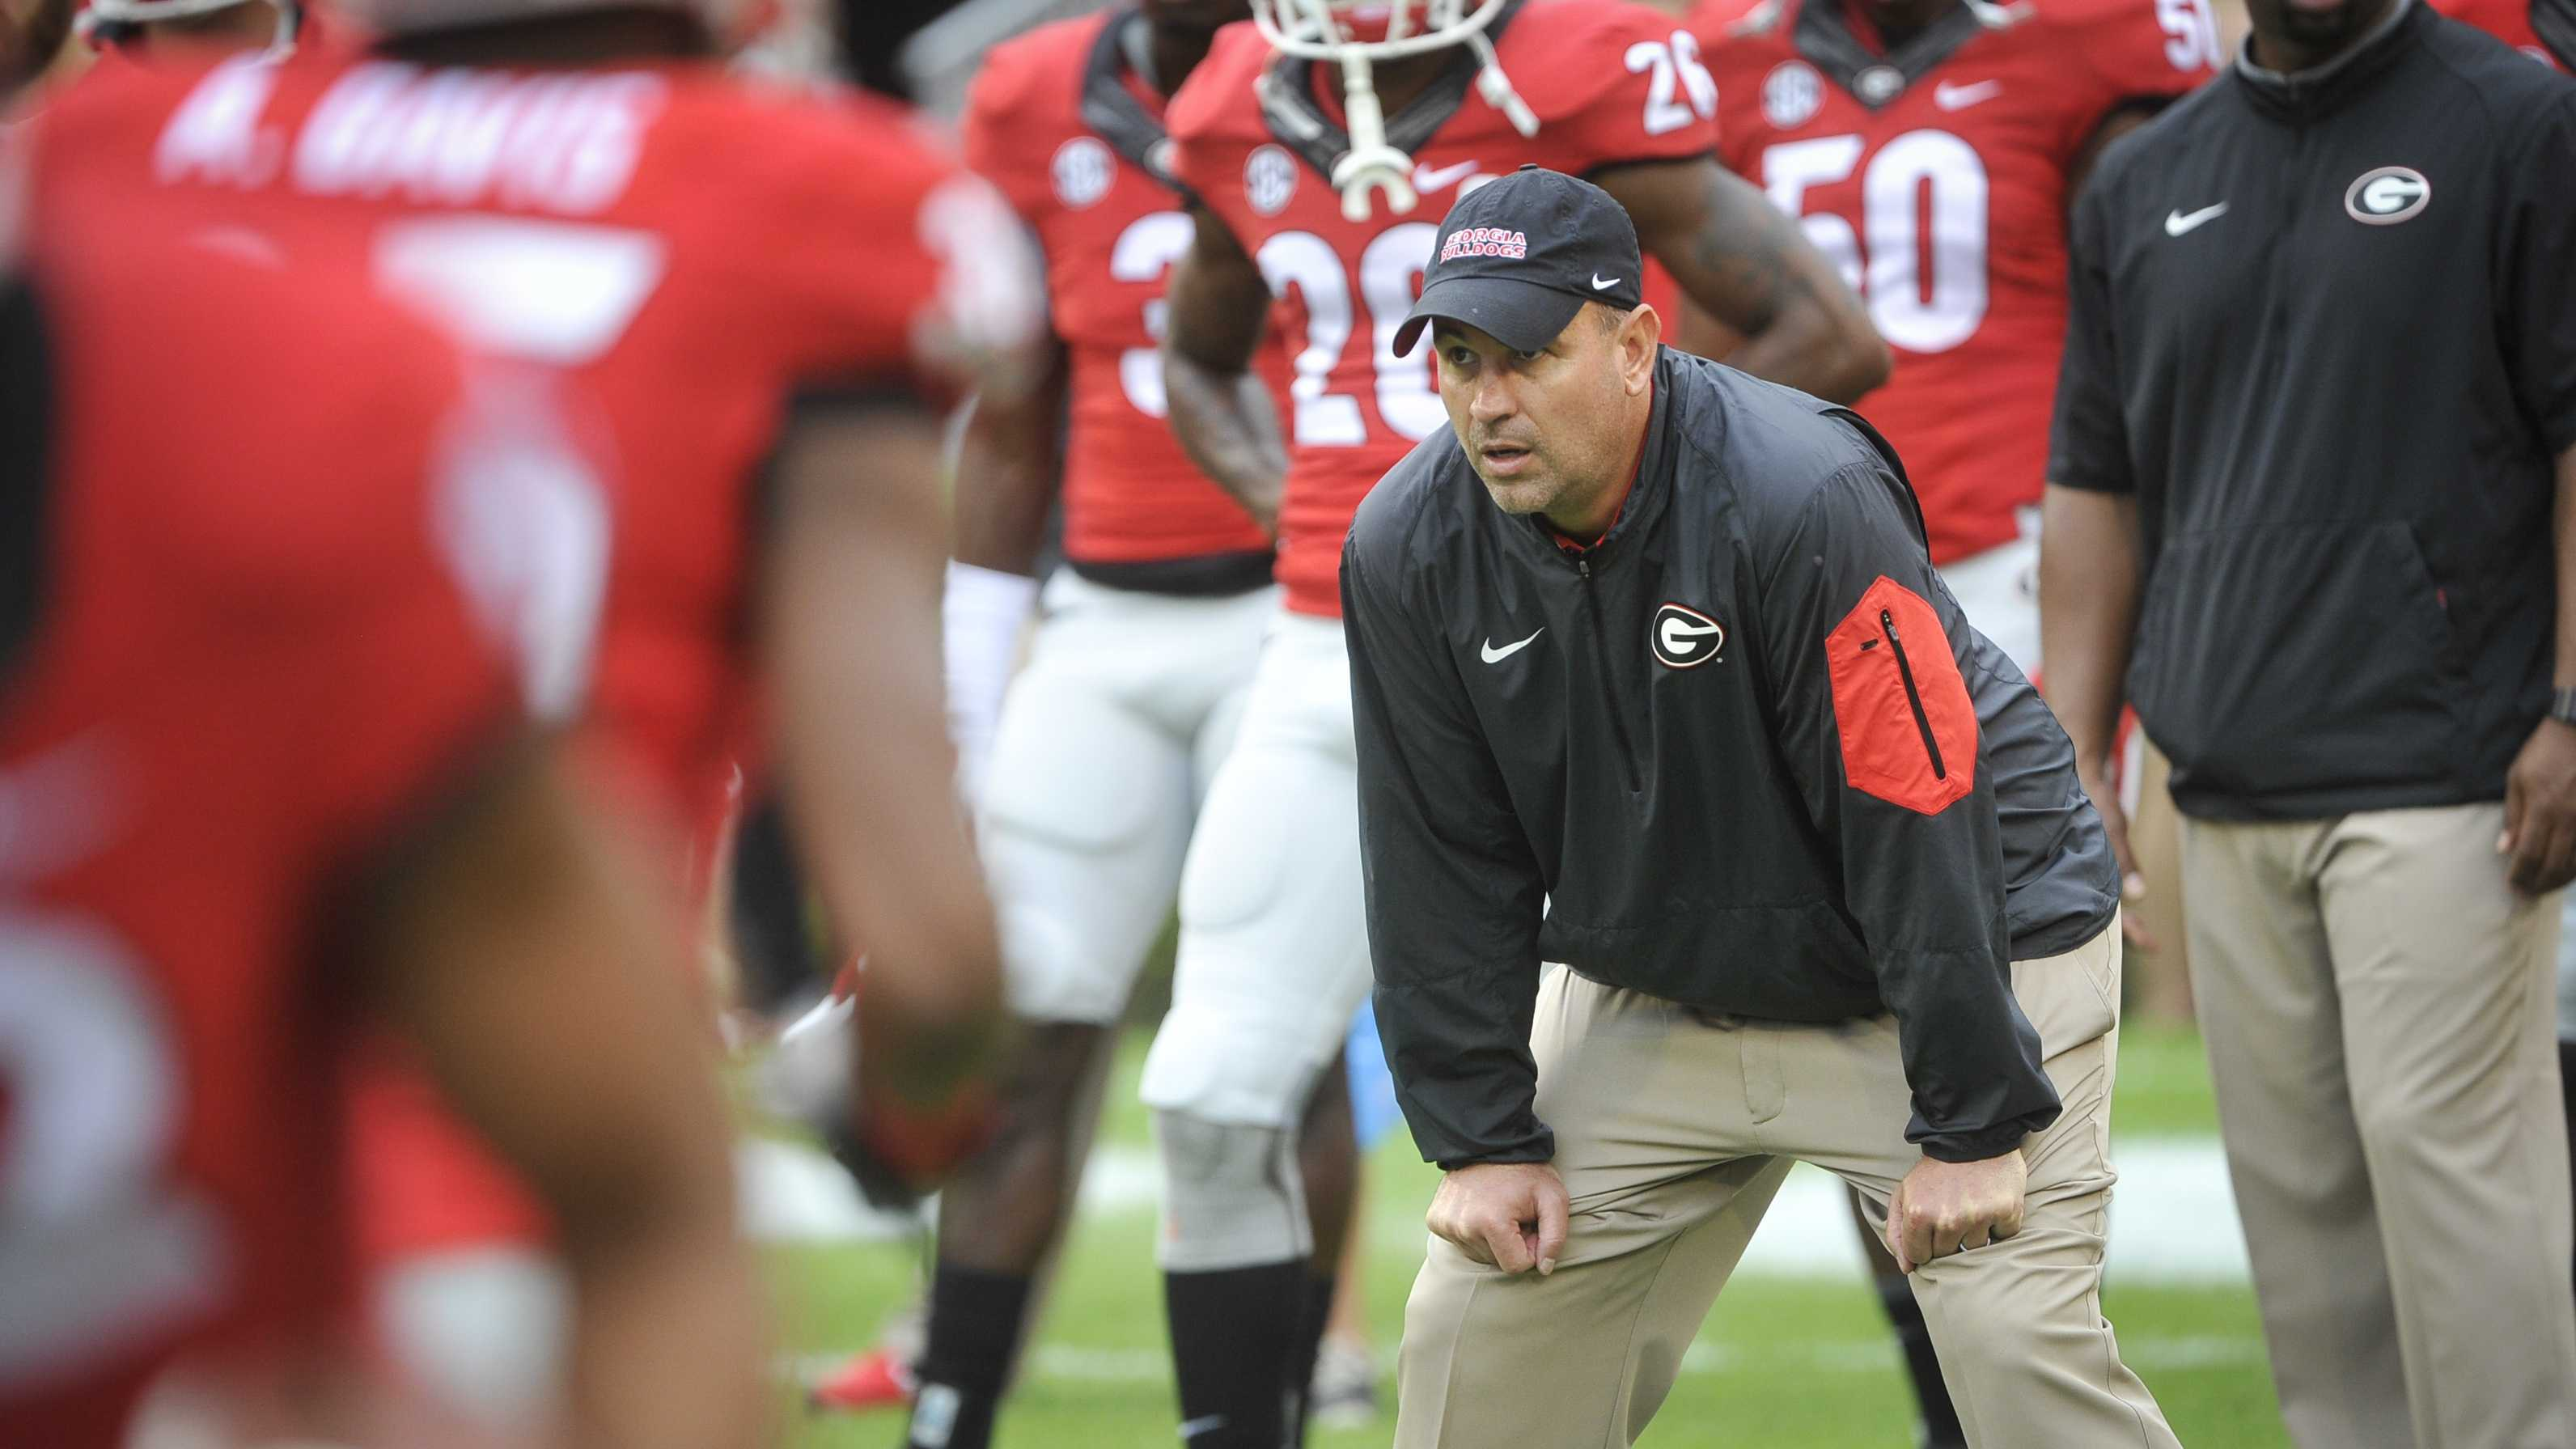 Georgia defensive coordinator Jeremy Pruitt watches warmups before an NCAA college football game against Kentucky Saturday, Nov. 7, 2015, in Athens, Ga. Georgia won 27-3.